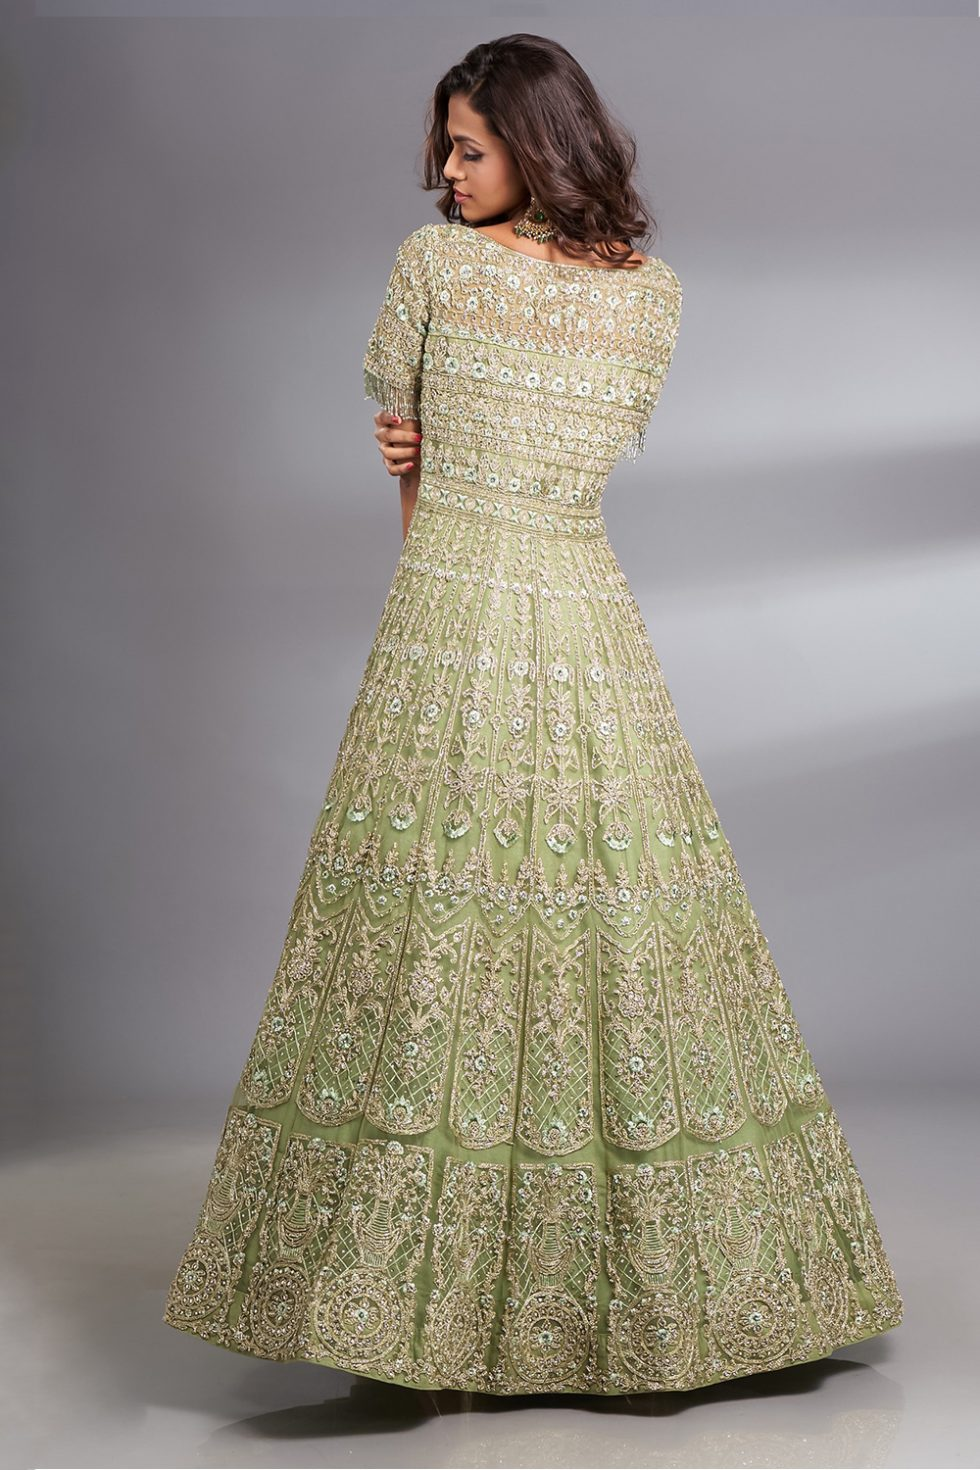 Fern green Anarkali gown set with dori thread work and silver embellishments paired with a matching dupatta and tassels.